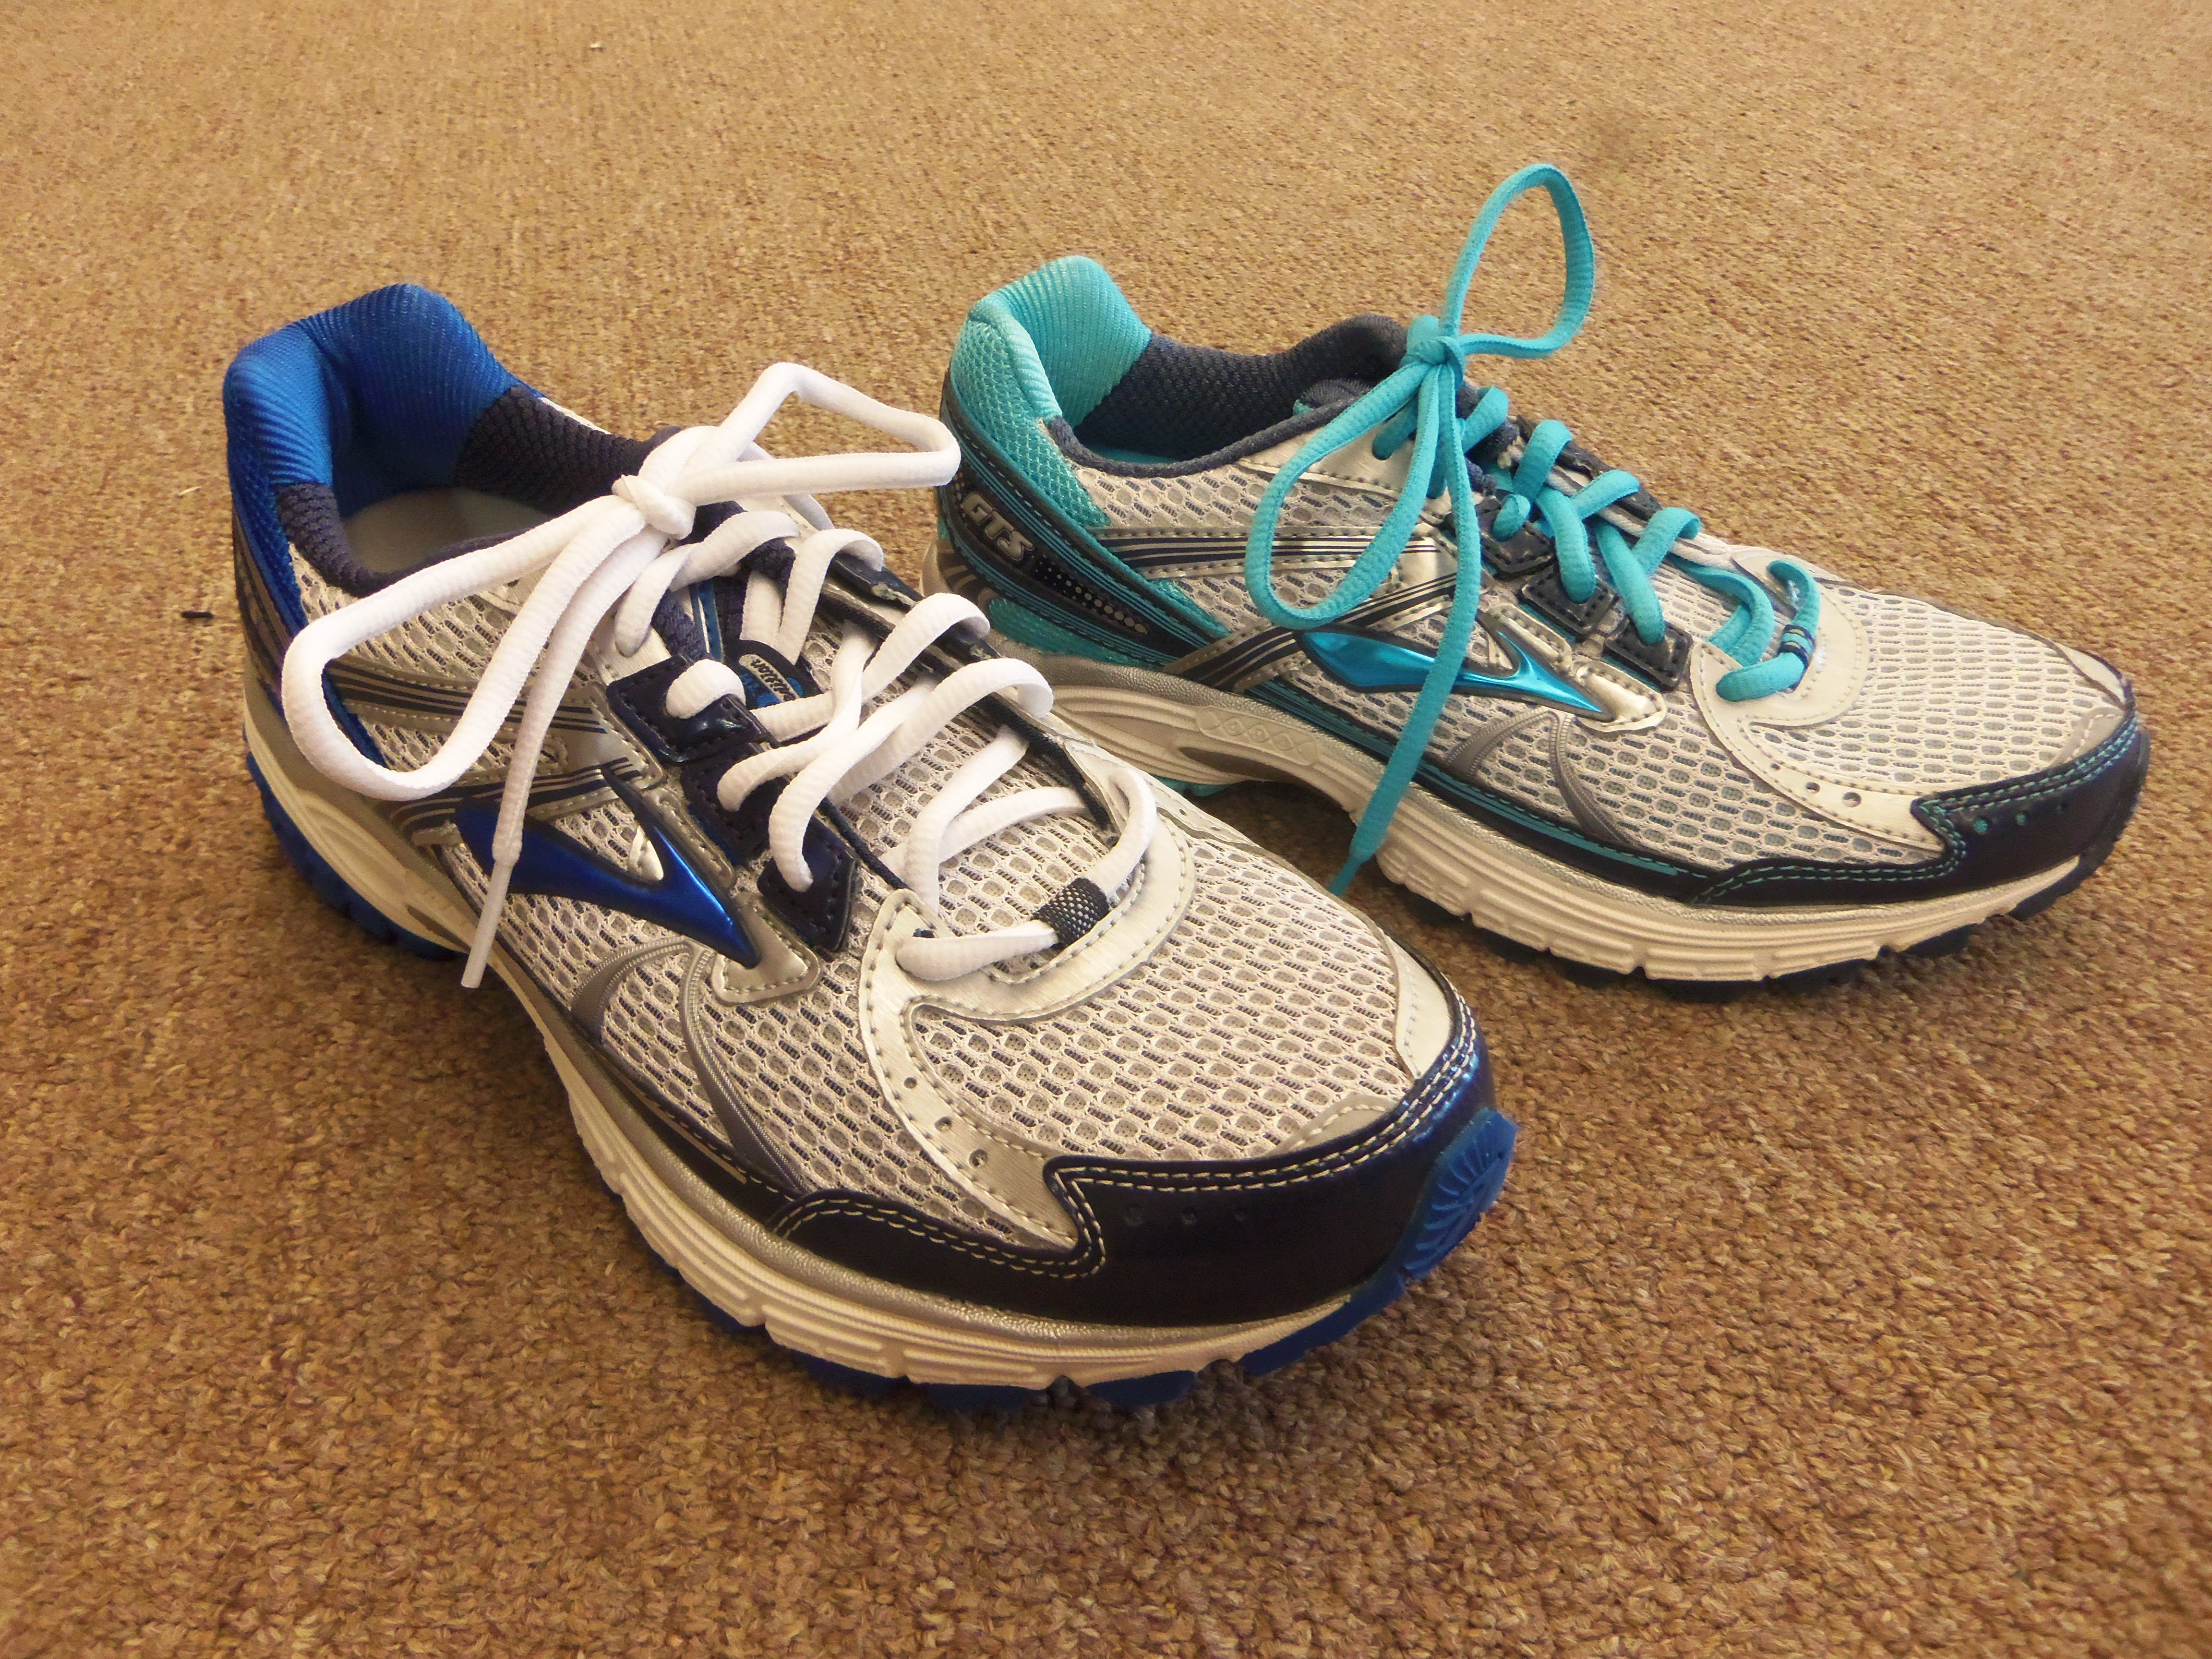 Run into summer in Brooks Adrenaline GTS 13 for men and women!!